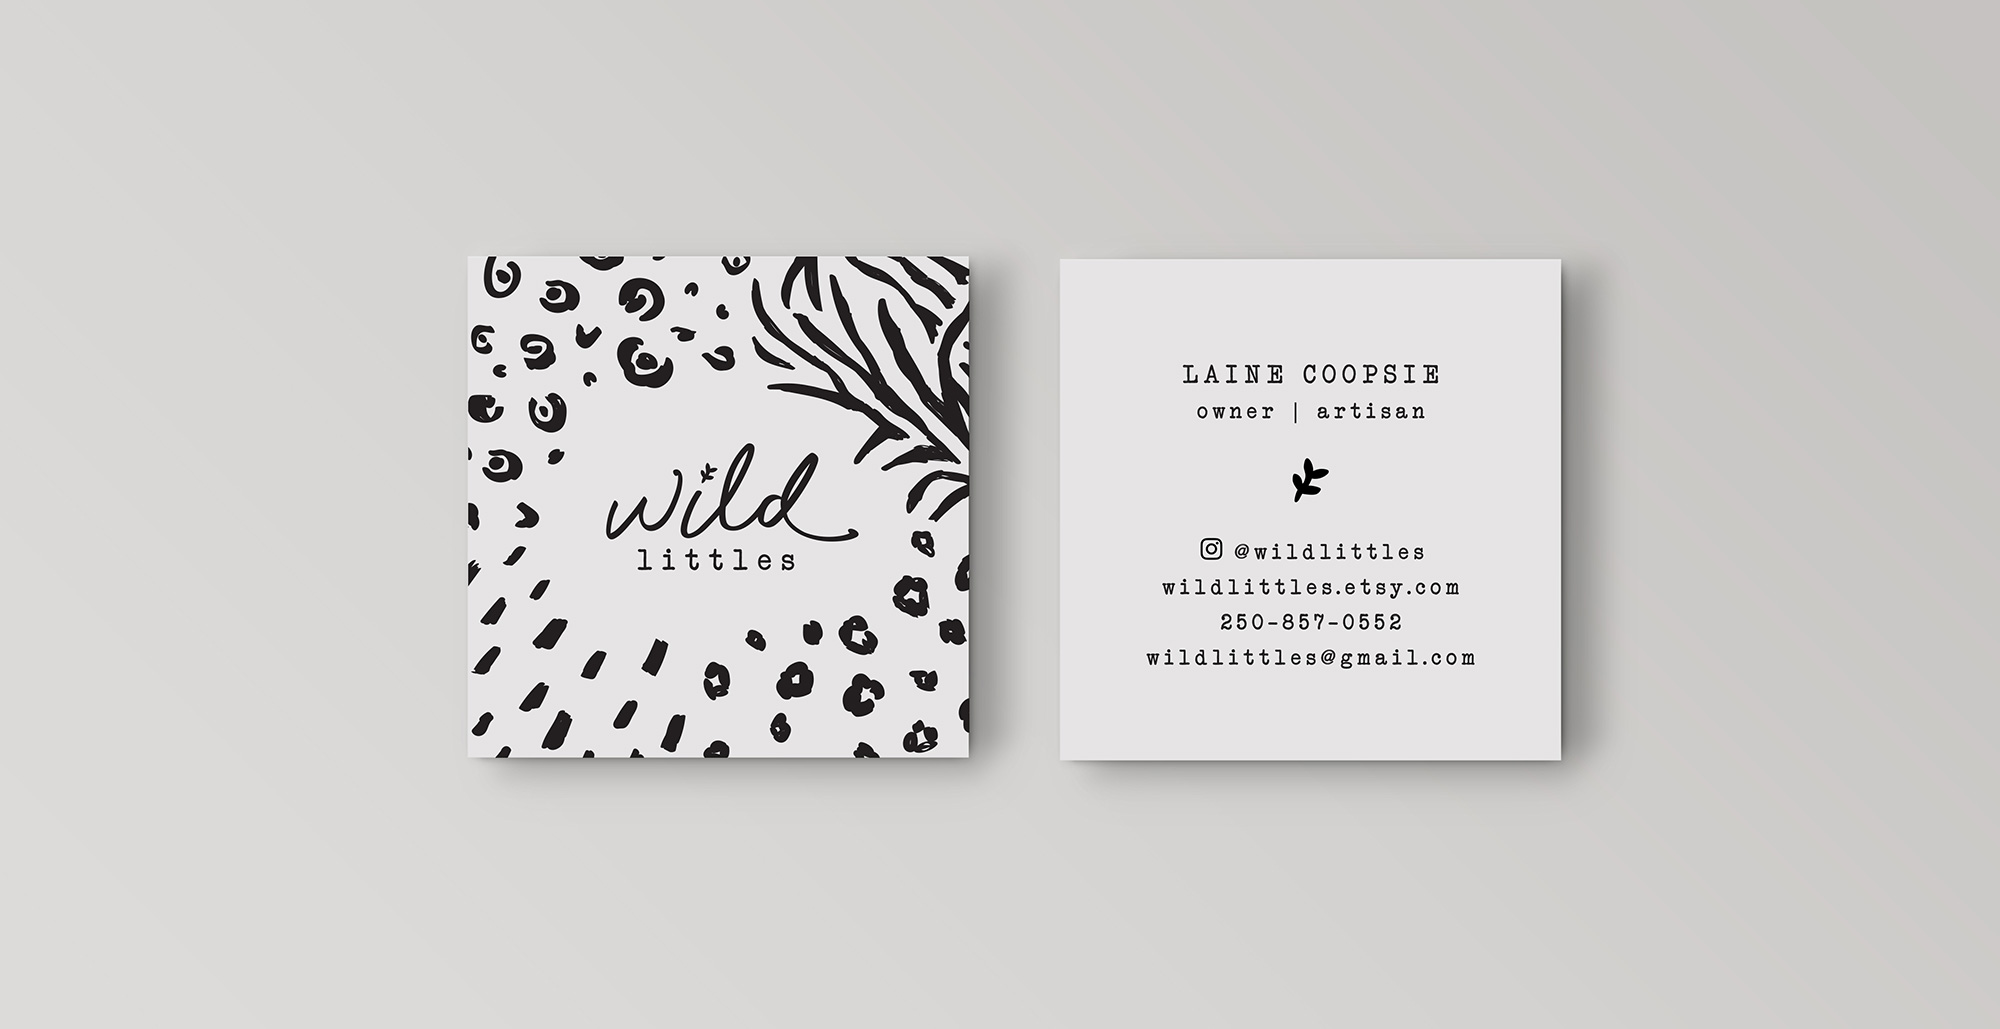 covetdesign_logo-design_branding_package-design_graphic-design_vancouver_work_feature_wildlittles-businesscard